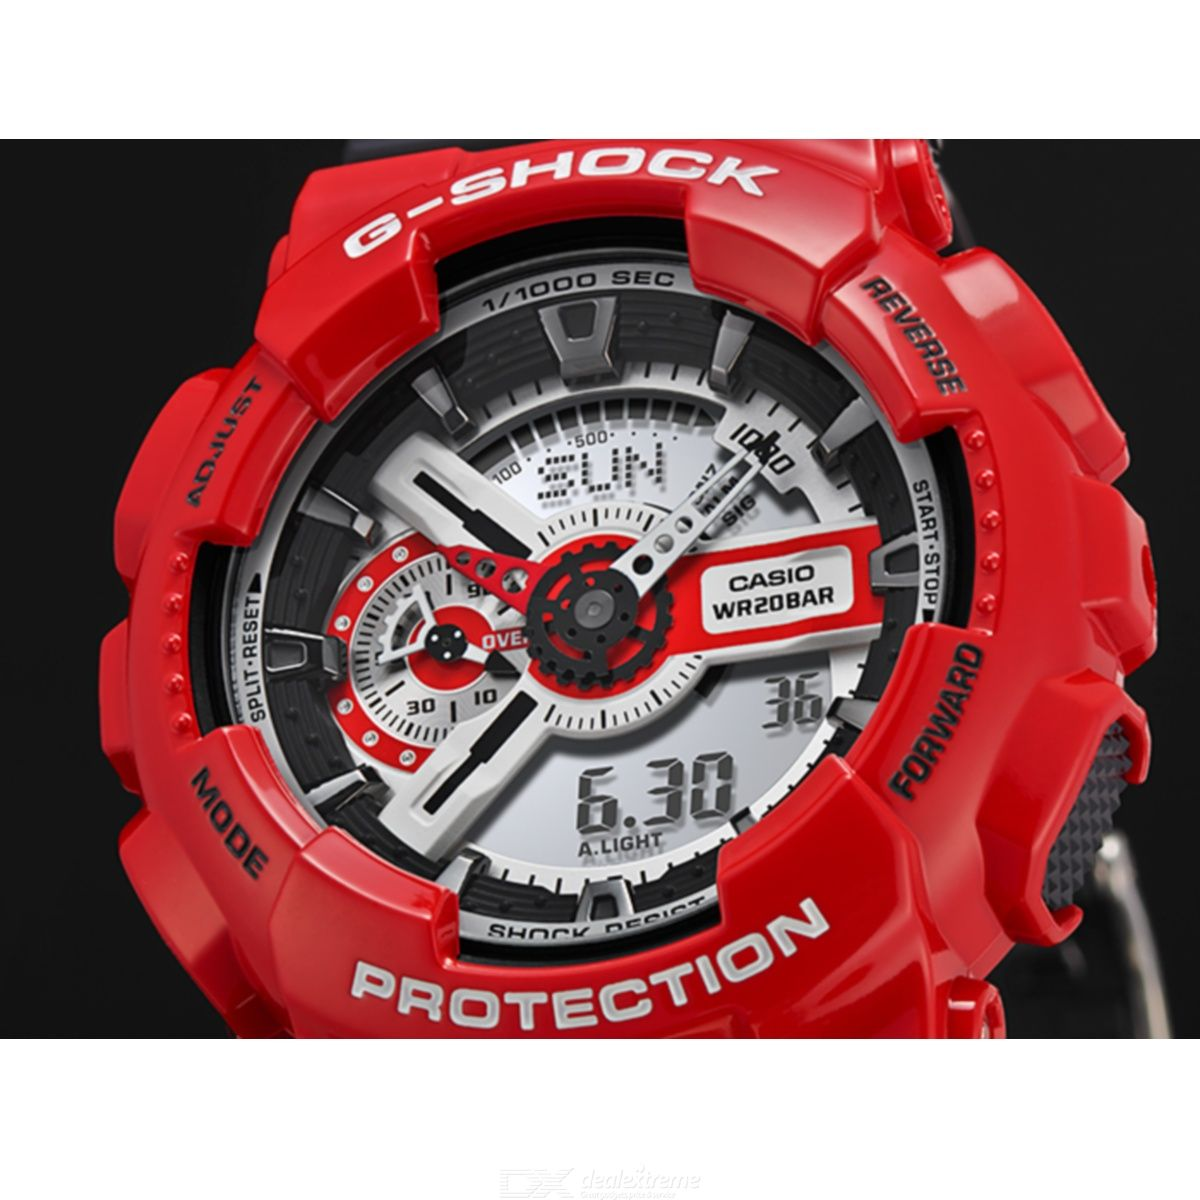 Casio G-Shock GA-110RD-4A Mens Watch - Red and Black